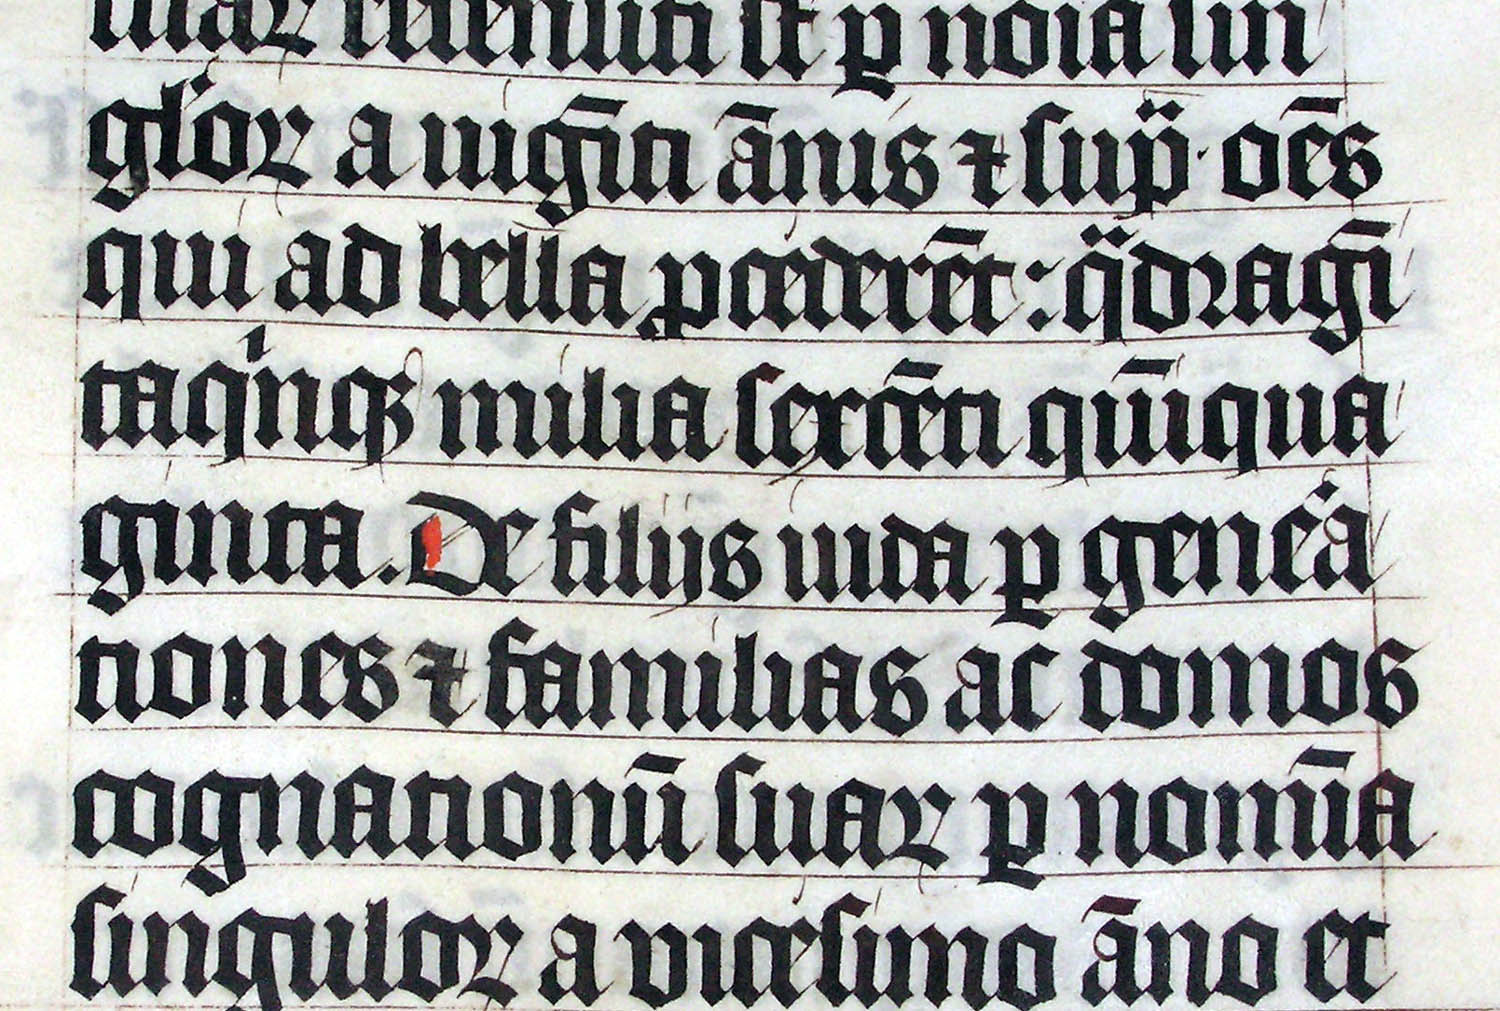 A hand-lettered Latin Bible from 1407. Unsurprisingly, aspiring Bible owners were not encouraged to do their own calligraphy. Adrian Pingstone, 2005 (Public Domain)